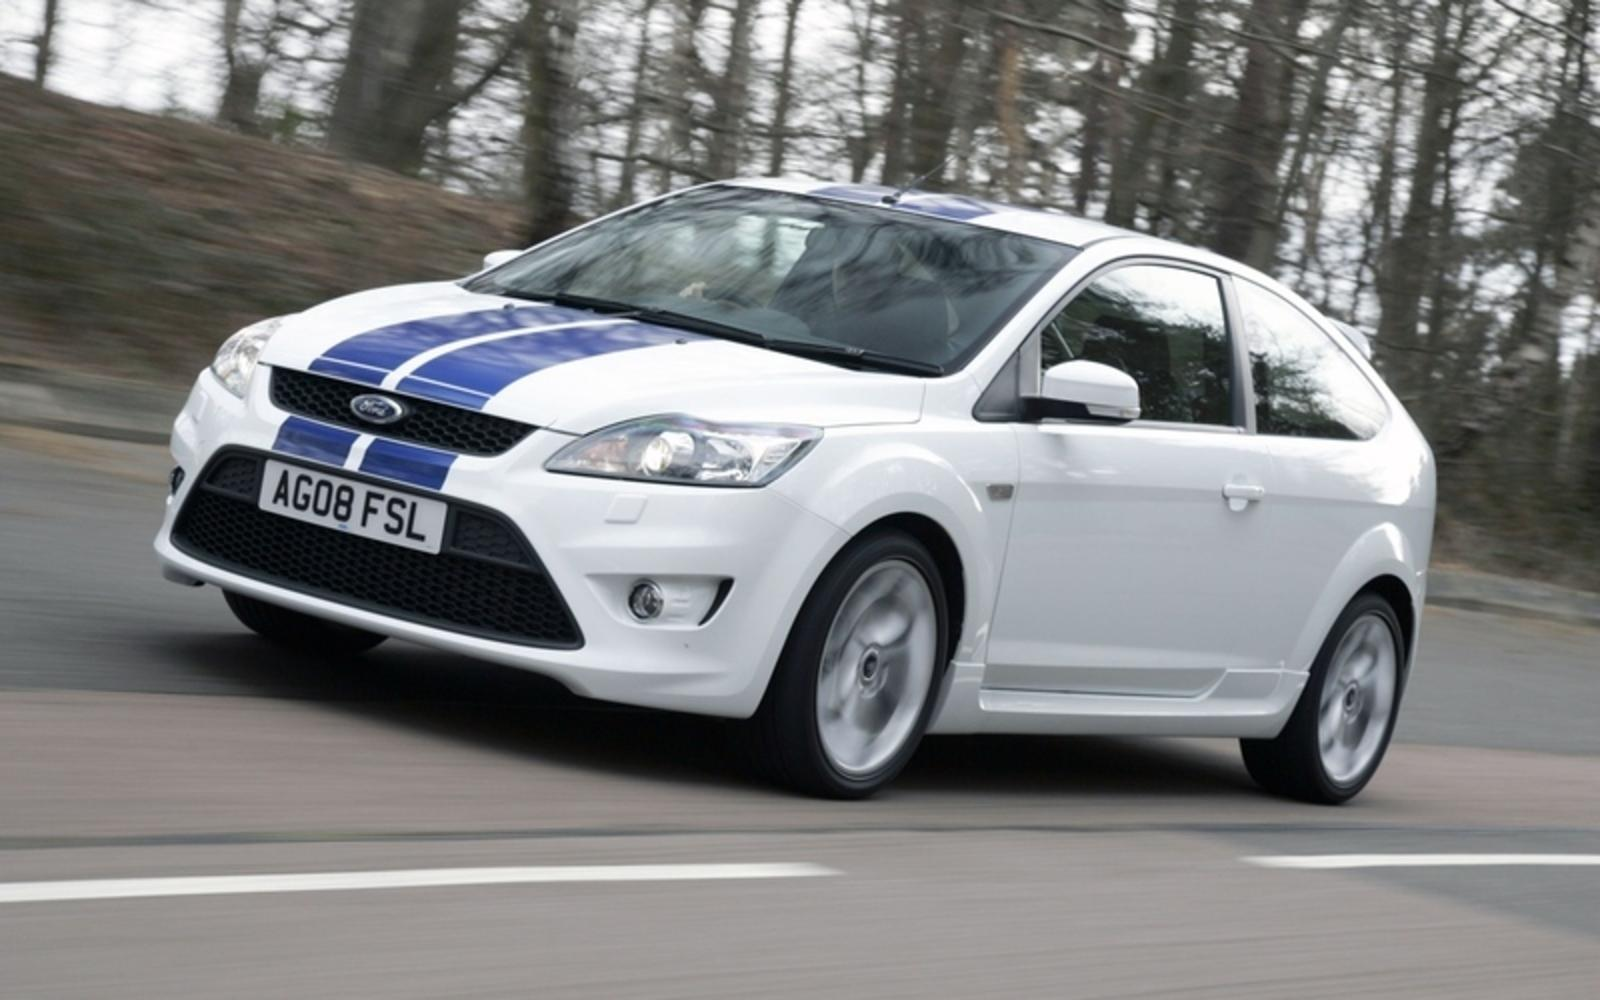 2008 ford focus st on sale from may 1 in the uk news top speed. Black Bedroom Furniture Sets. Home Design Ideas